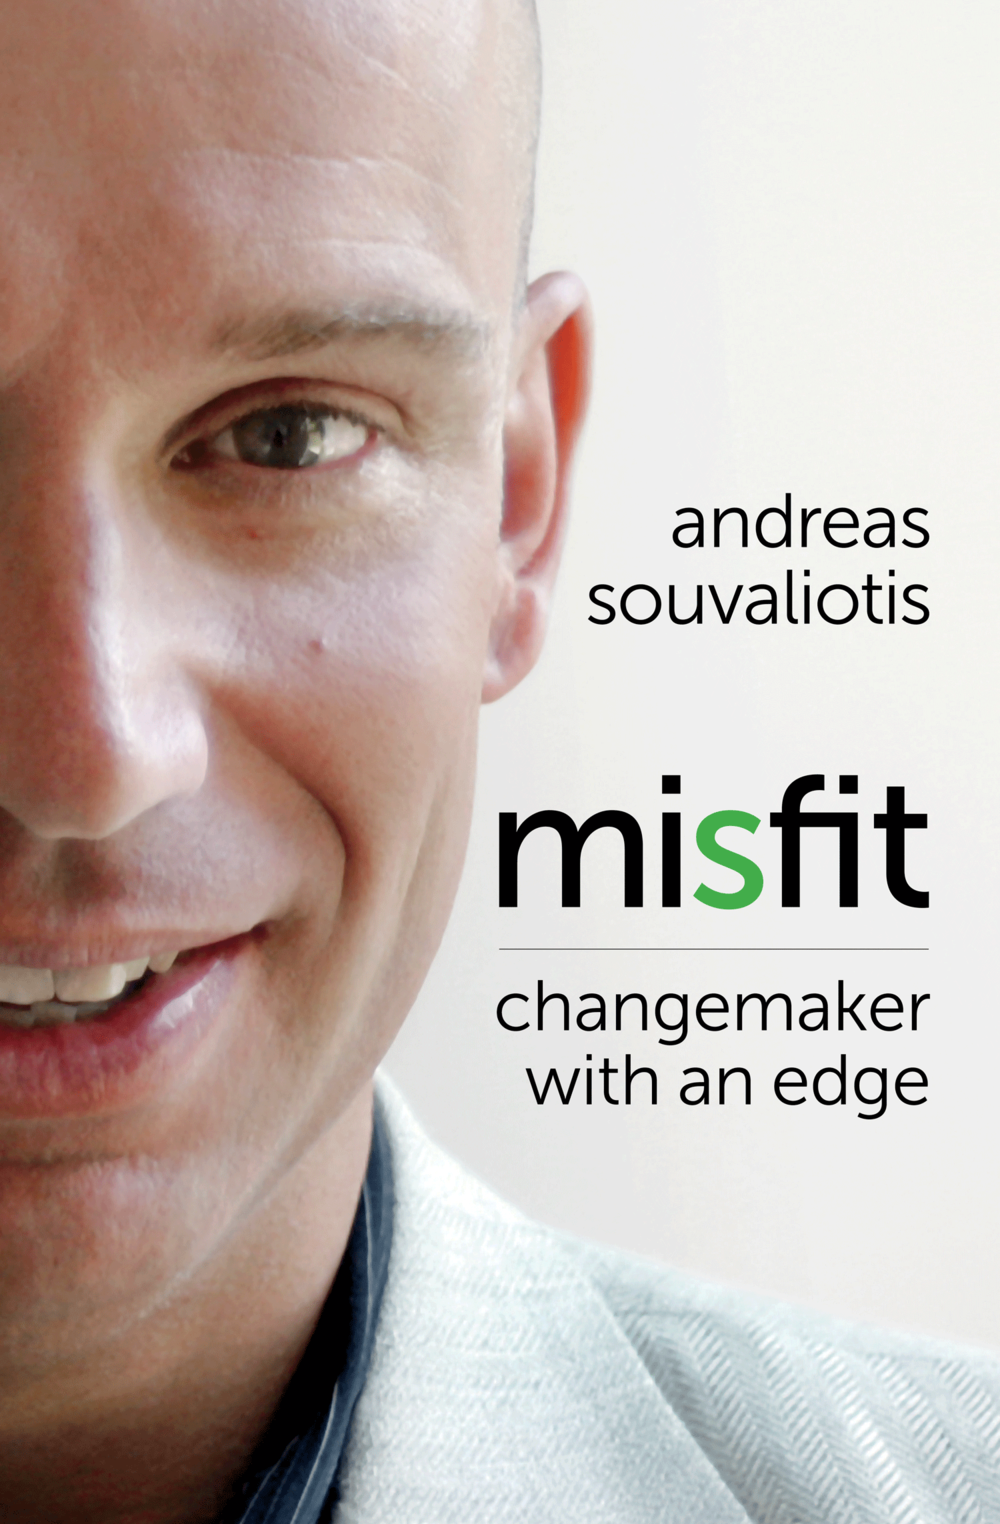 Misfit changemaker with an edge